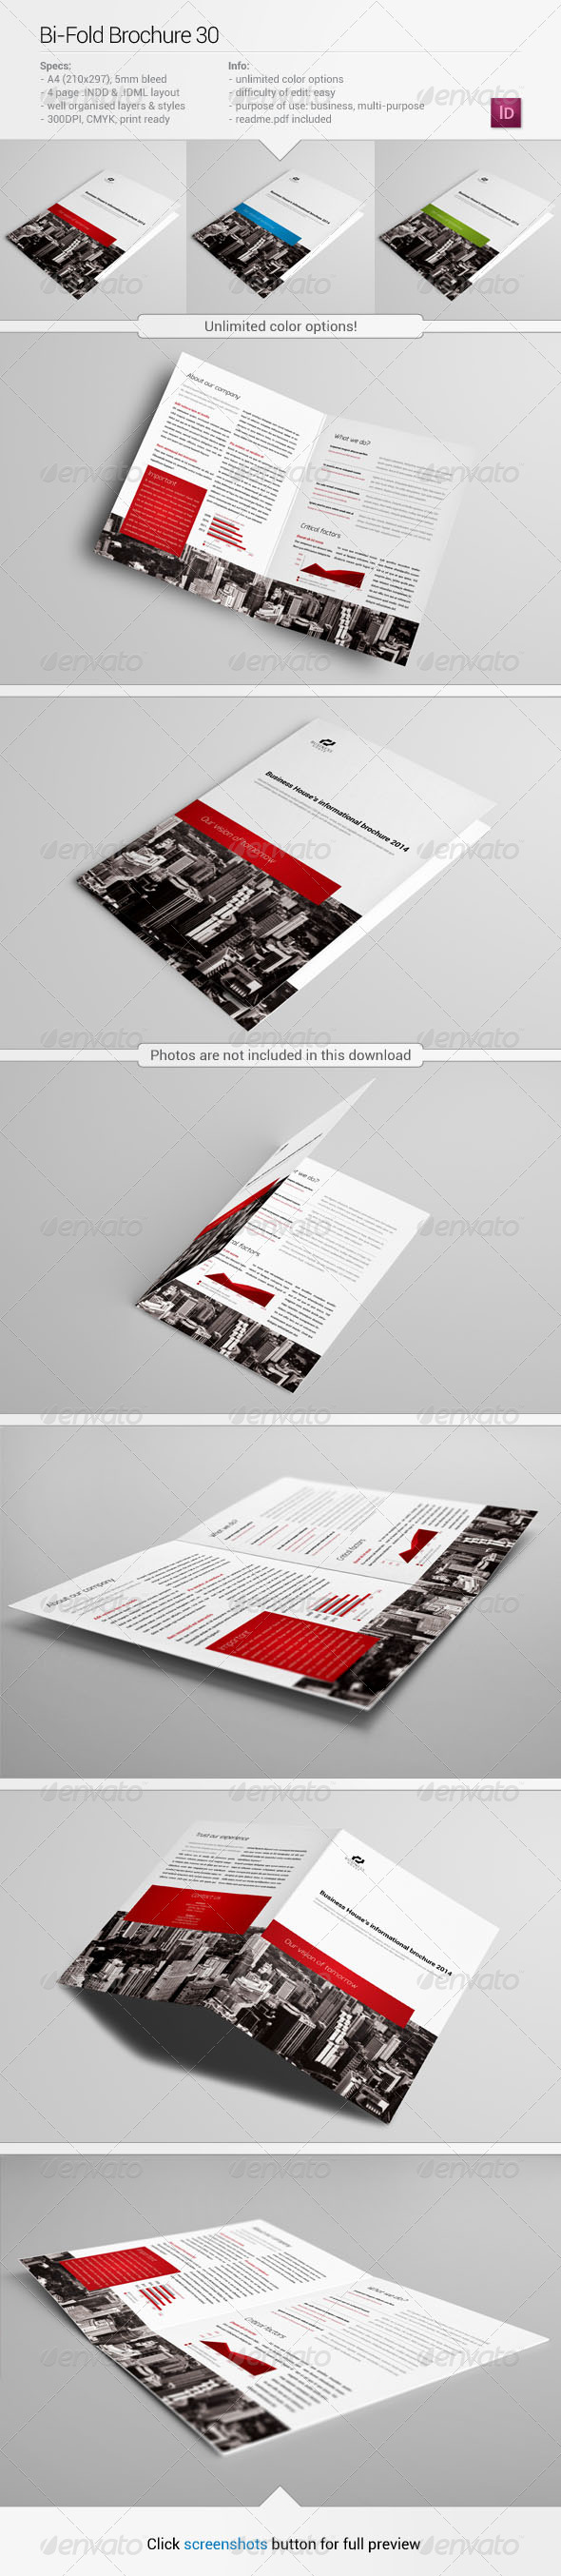 GraphicRiver Bi-Fold Brochure 30 5854911